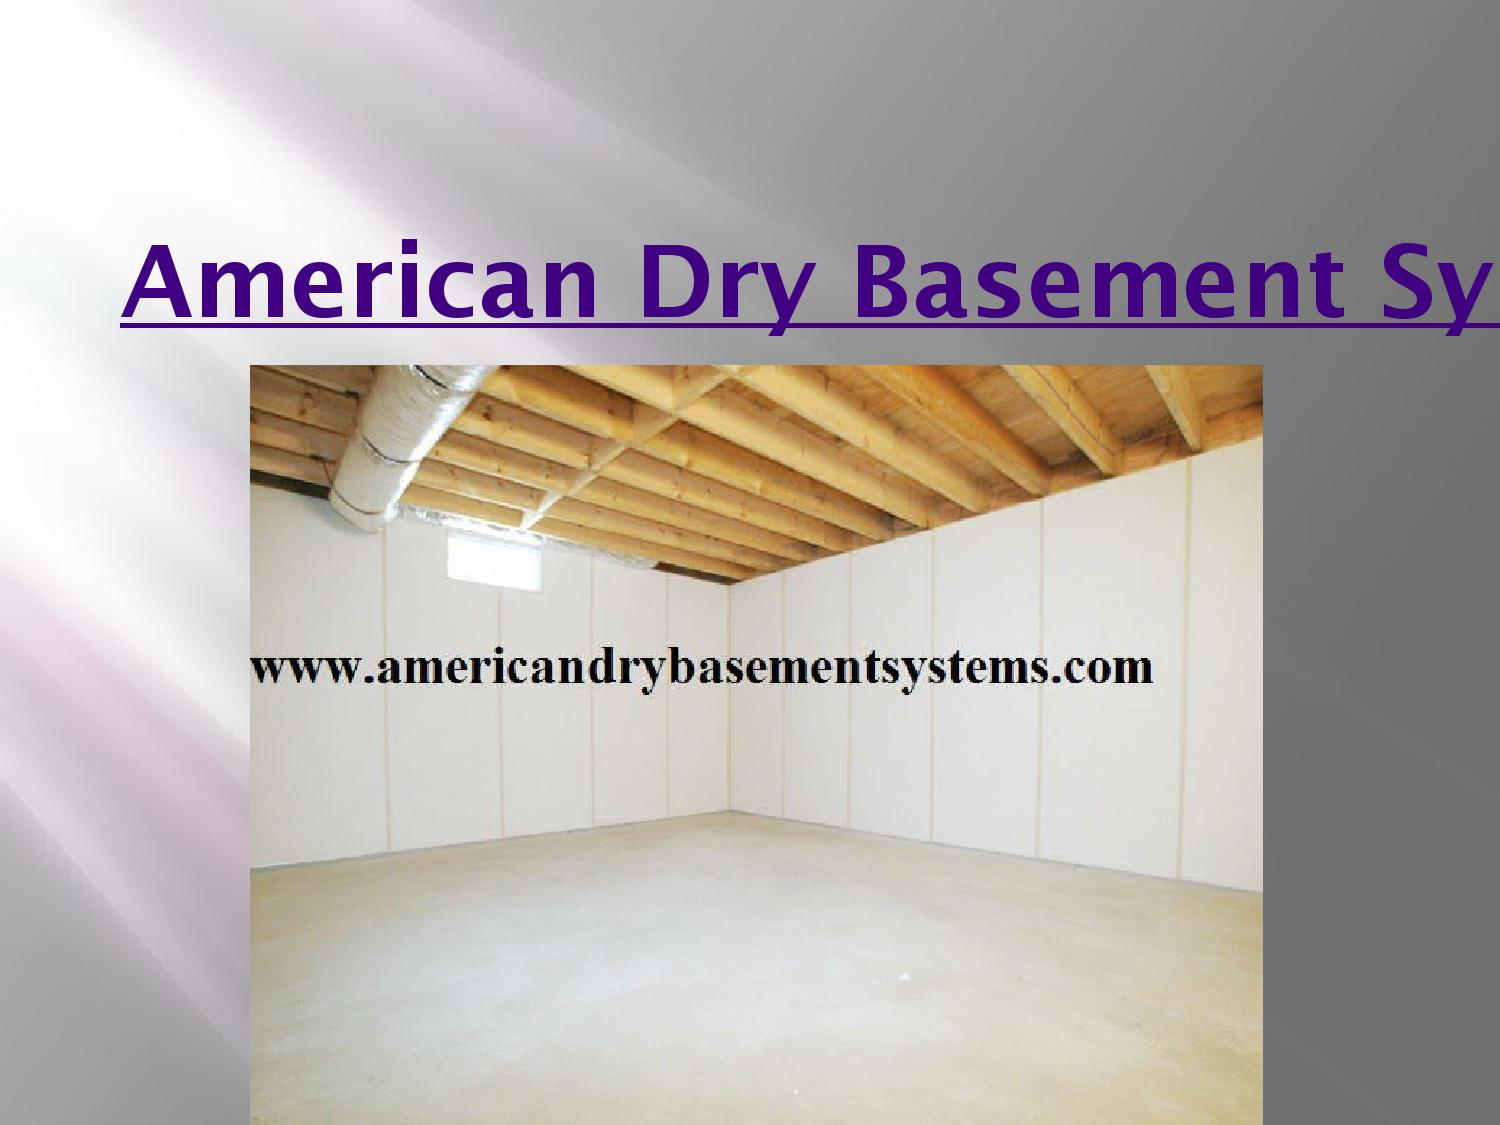 american dry basement systems in brookfield by americandrybasement rh issuu com american dry basement systems reviews american dry basement systems reviews